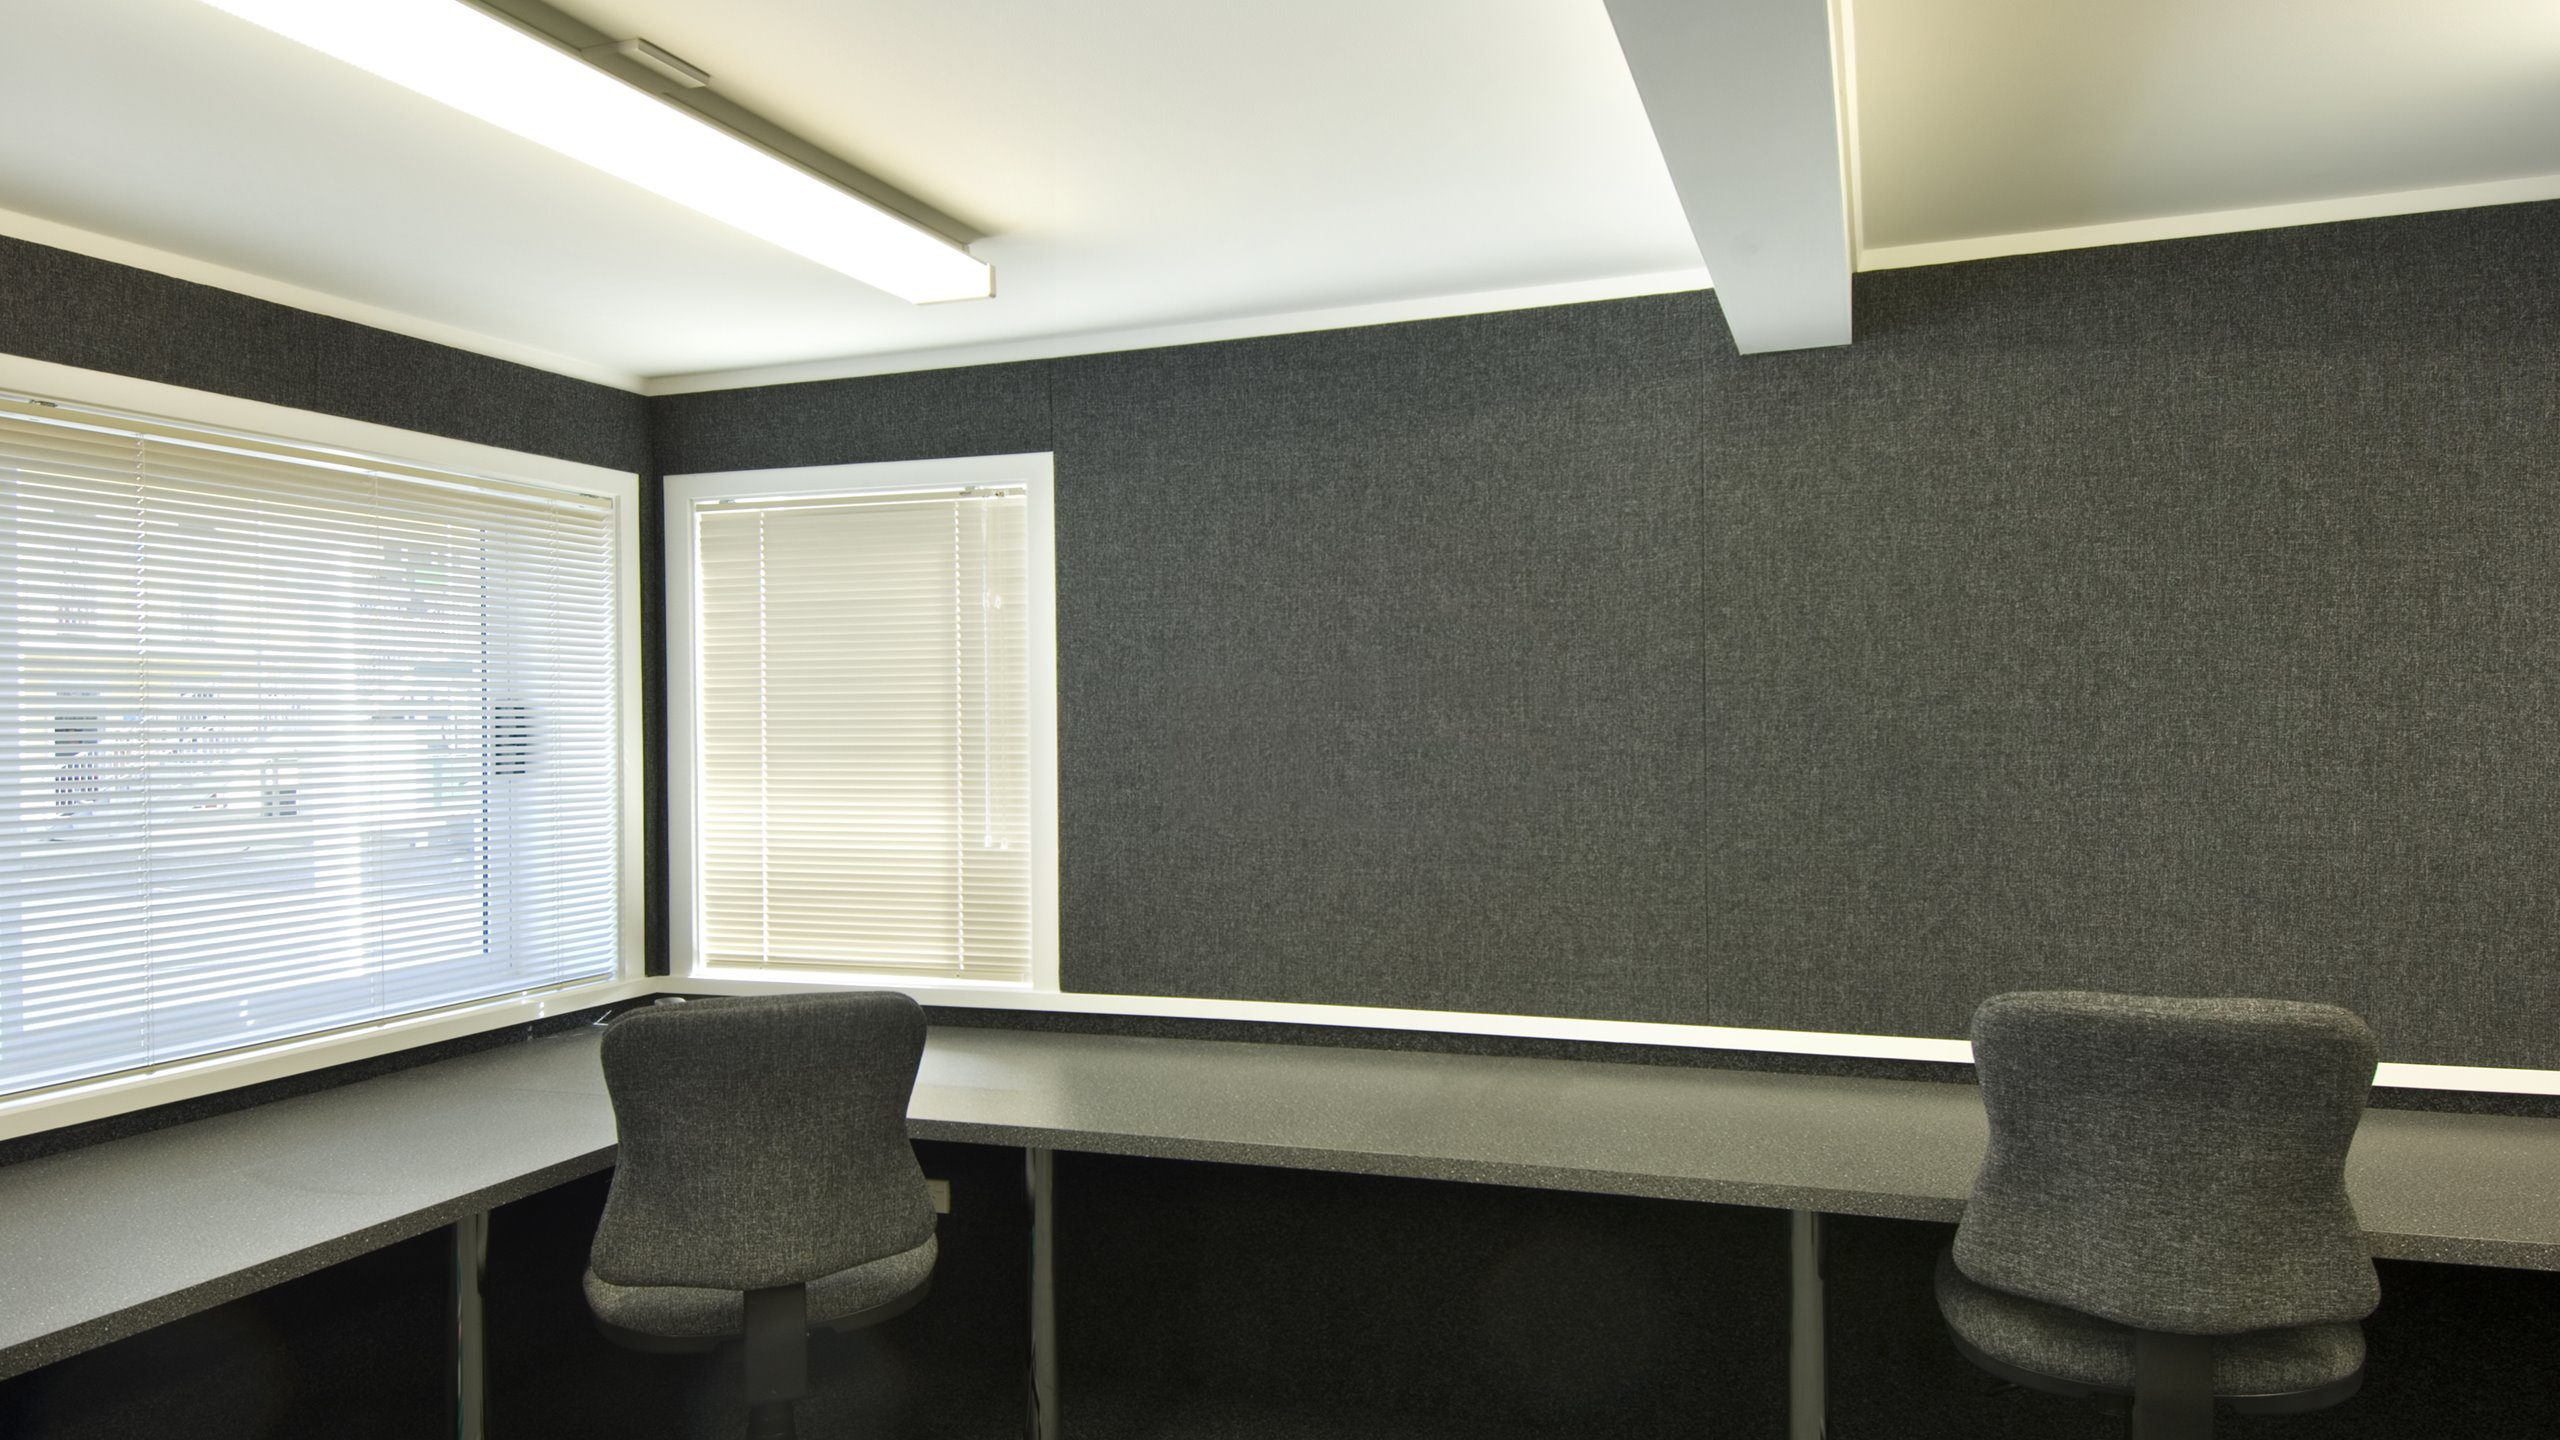 Premier pinboard installed in an office going around the windows and walls in charcoal grey fabric.